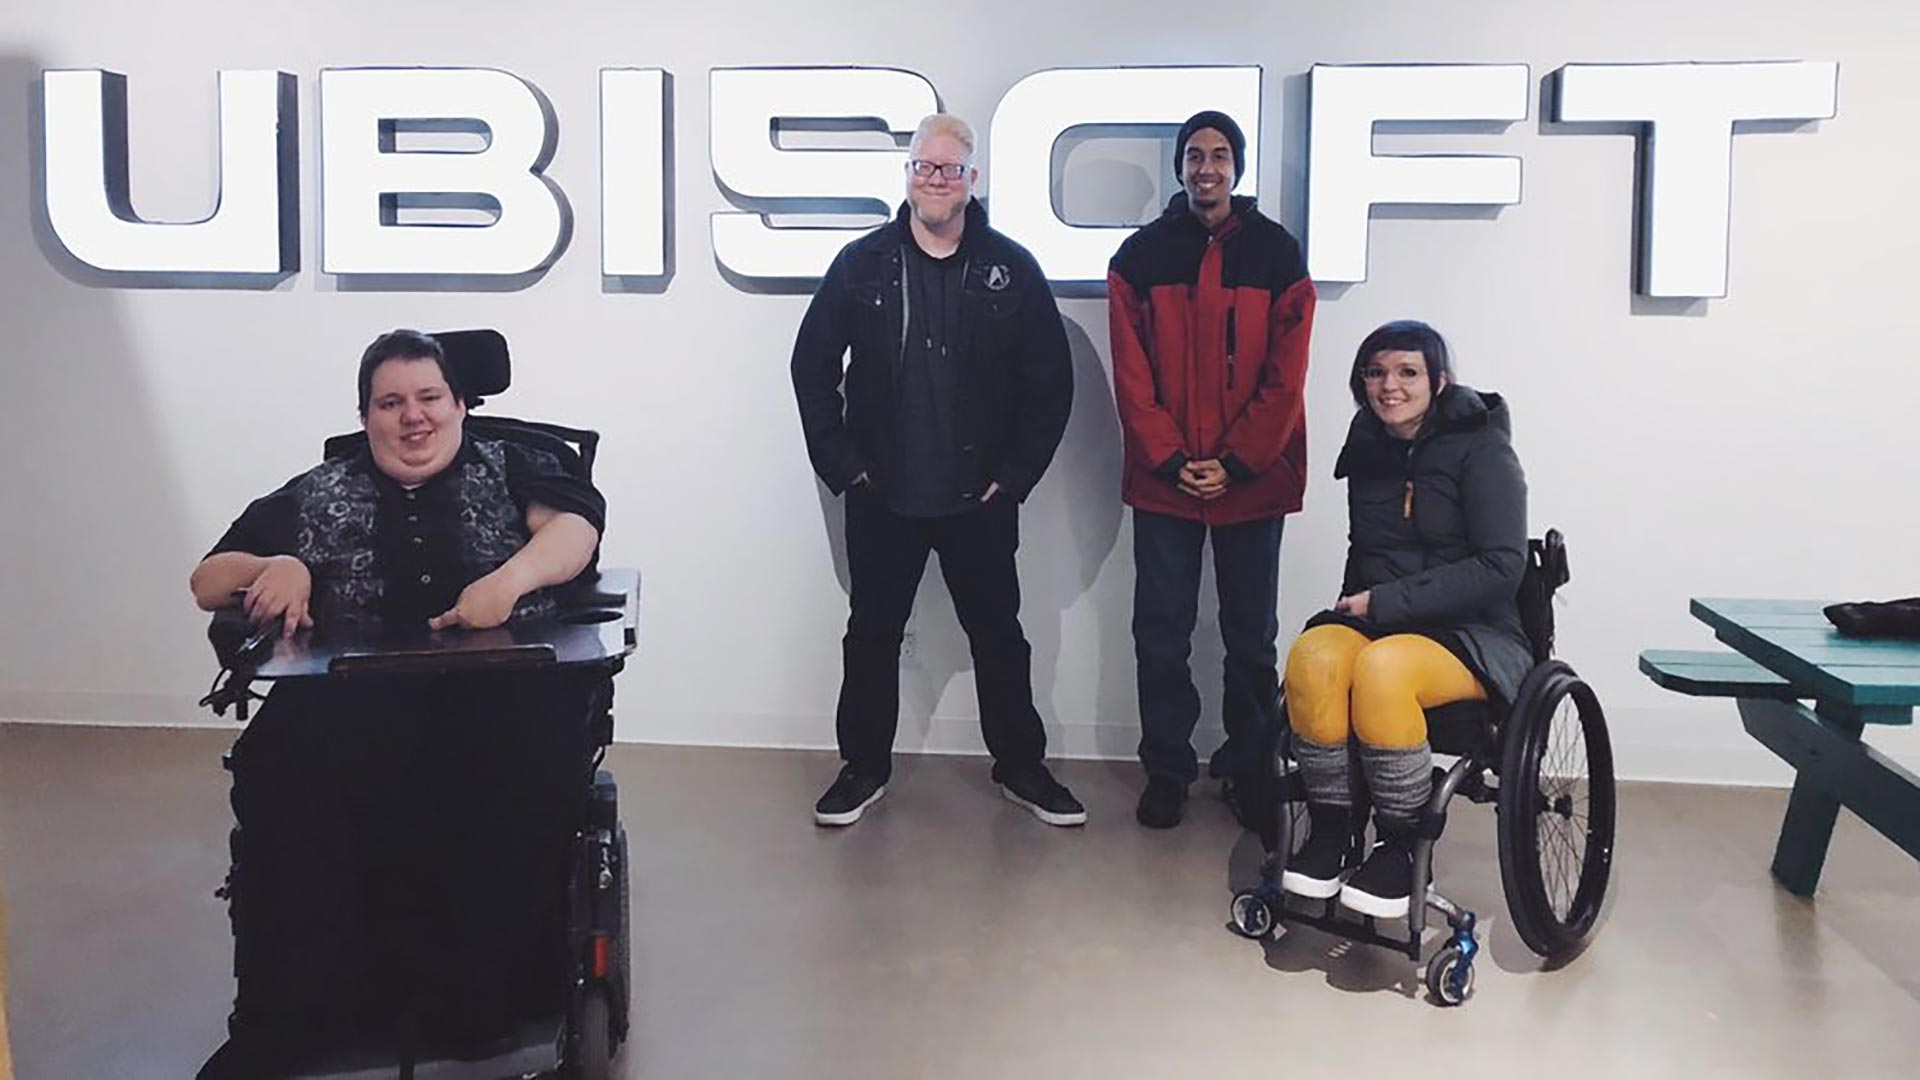 Steve Saylor and other accessibility consultants in a Ubisoft office